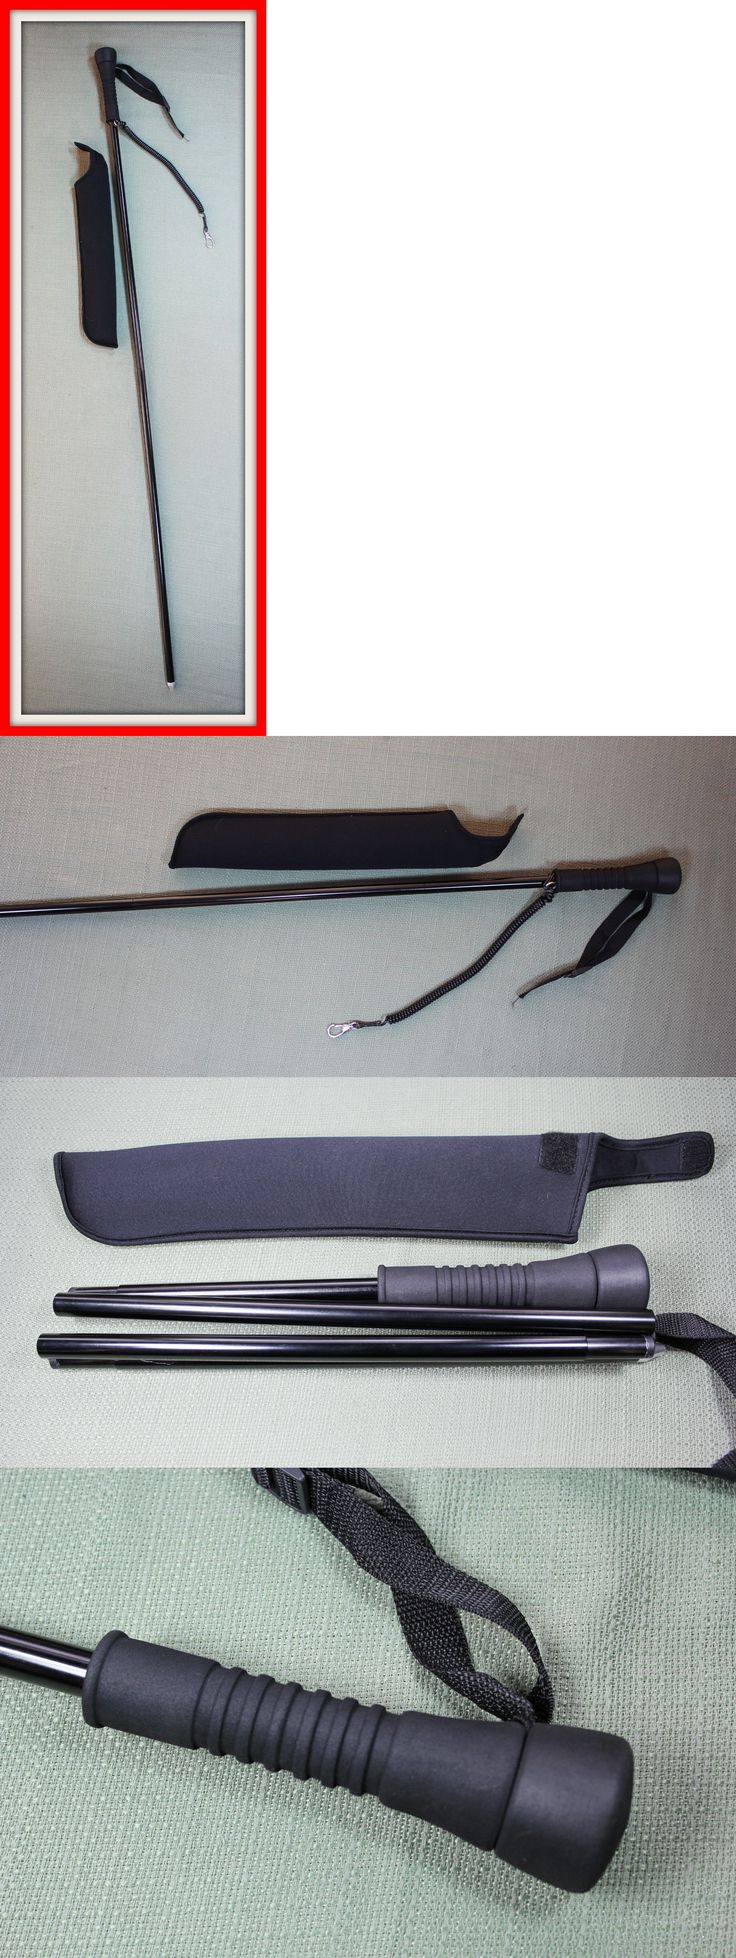 Fly Fishing Accessories 87098: Wading Staff Fly Fishing Collapsible Stream Walking Stick Wading Staff Ship Fast -> BUY IT NOW ONLY: $32 on eBay!